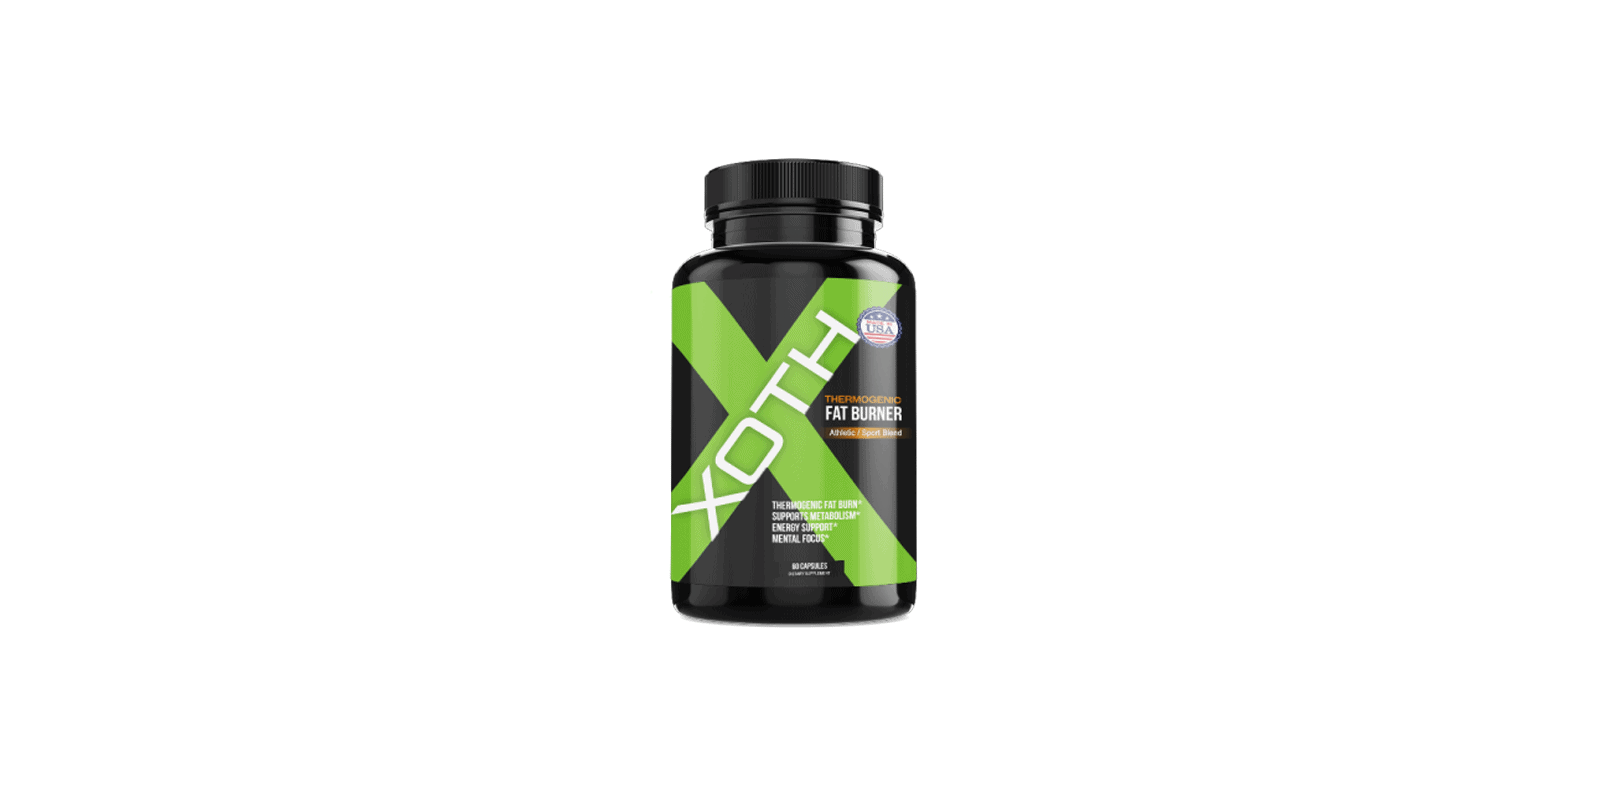 Thermogenic Fat Burner Reviews